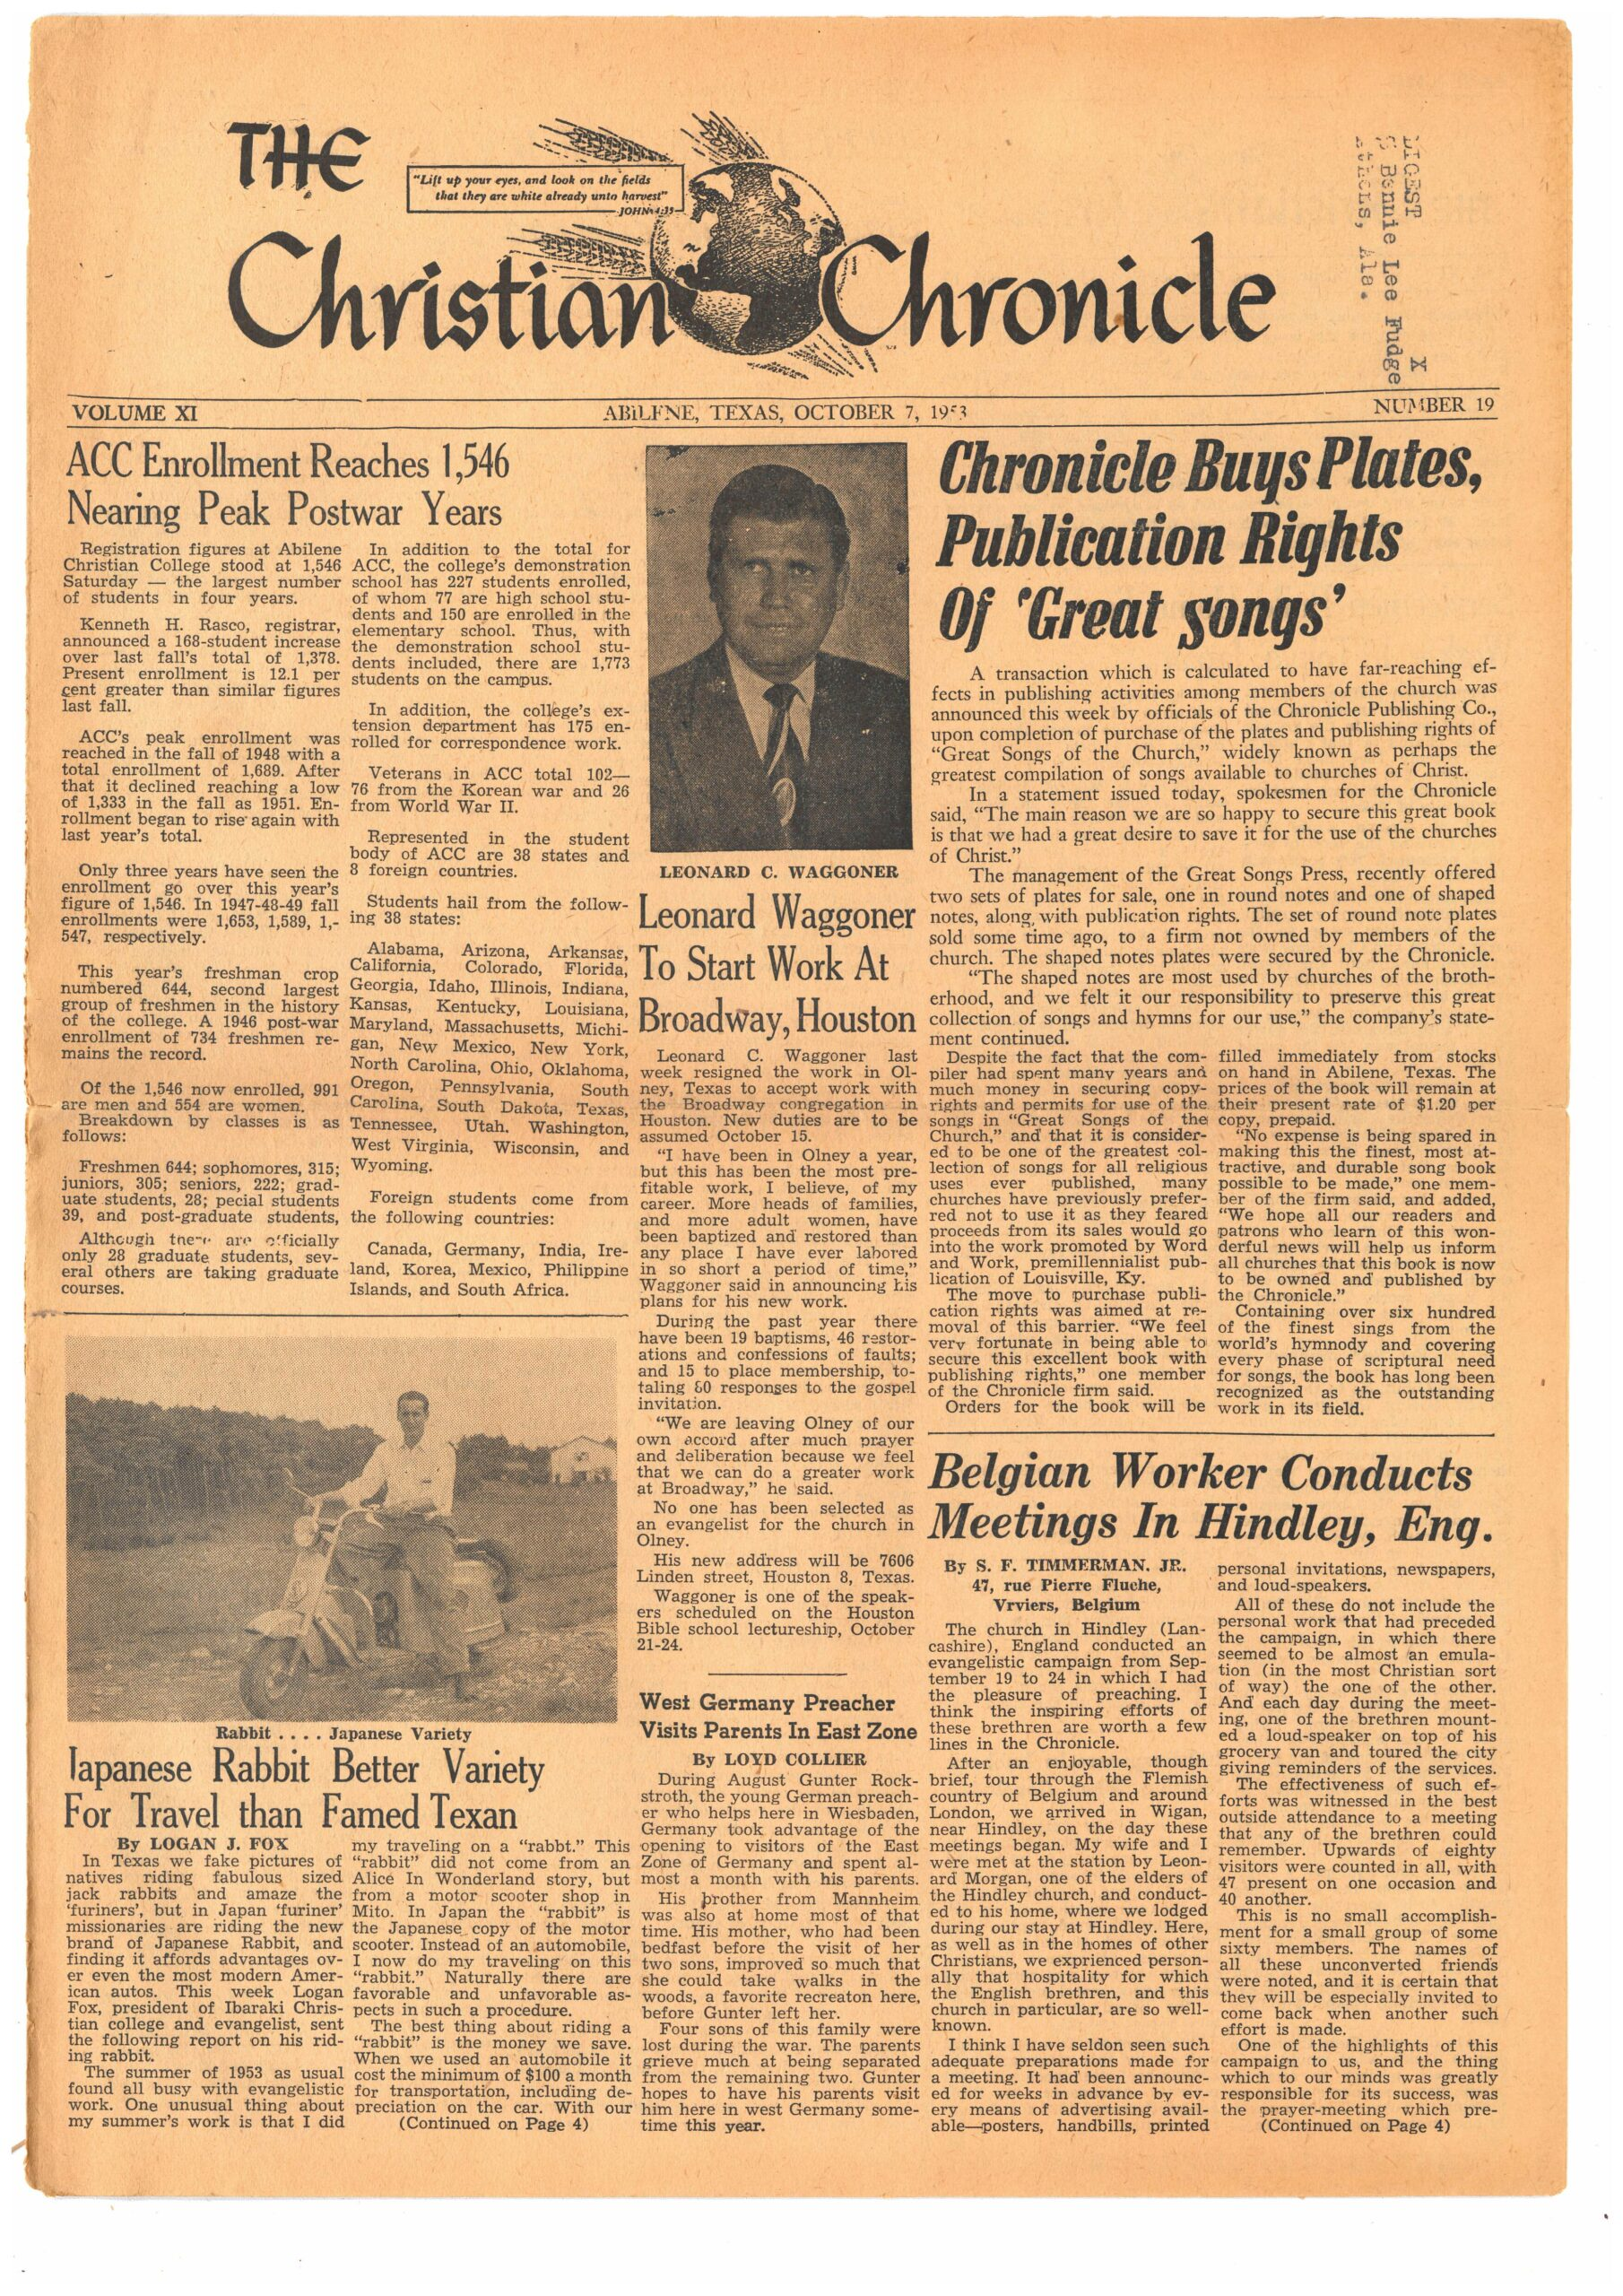 'Chronicle Buys Plates, Publications Rights of 'Great Songs,' Christian Chronicle October 7, 1953.